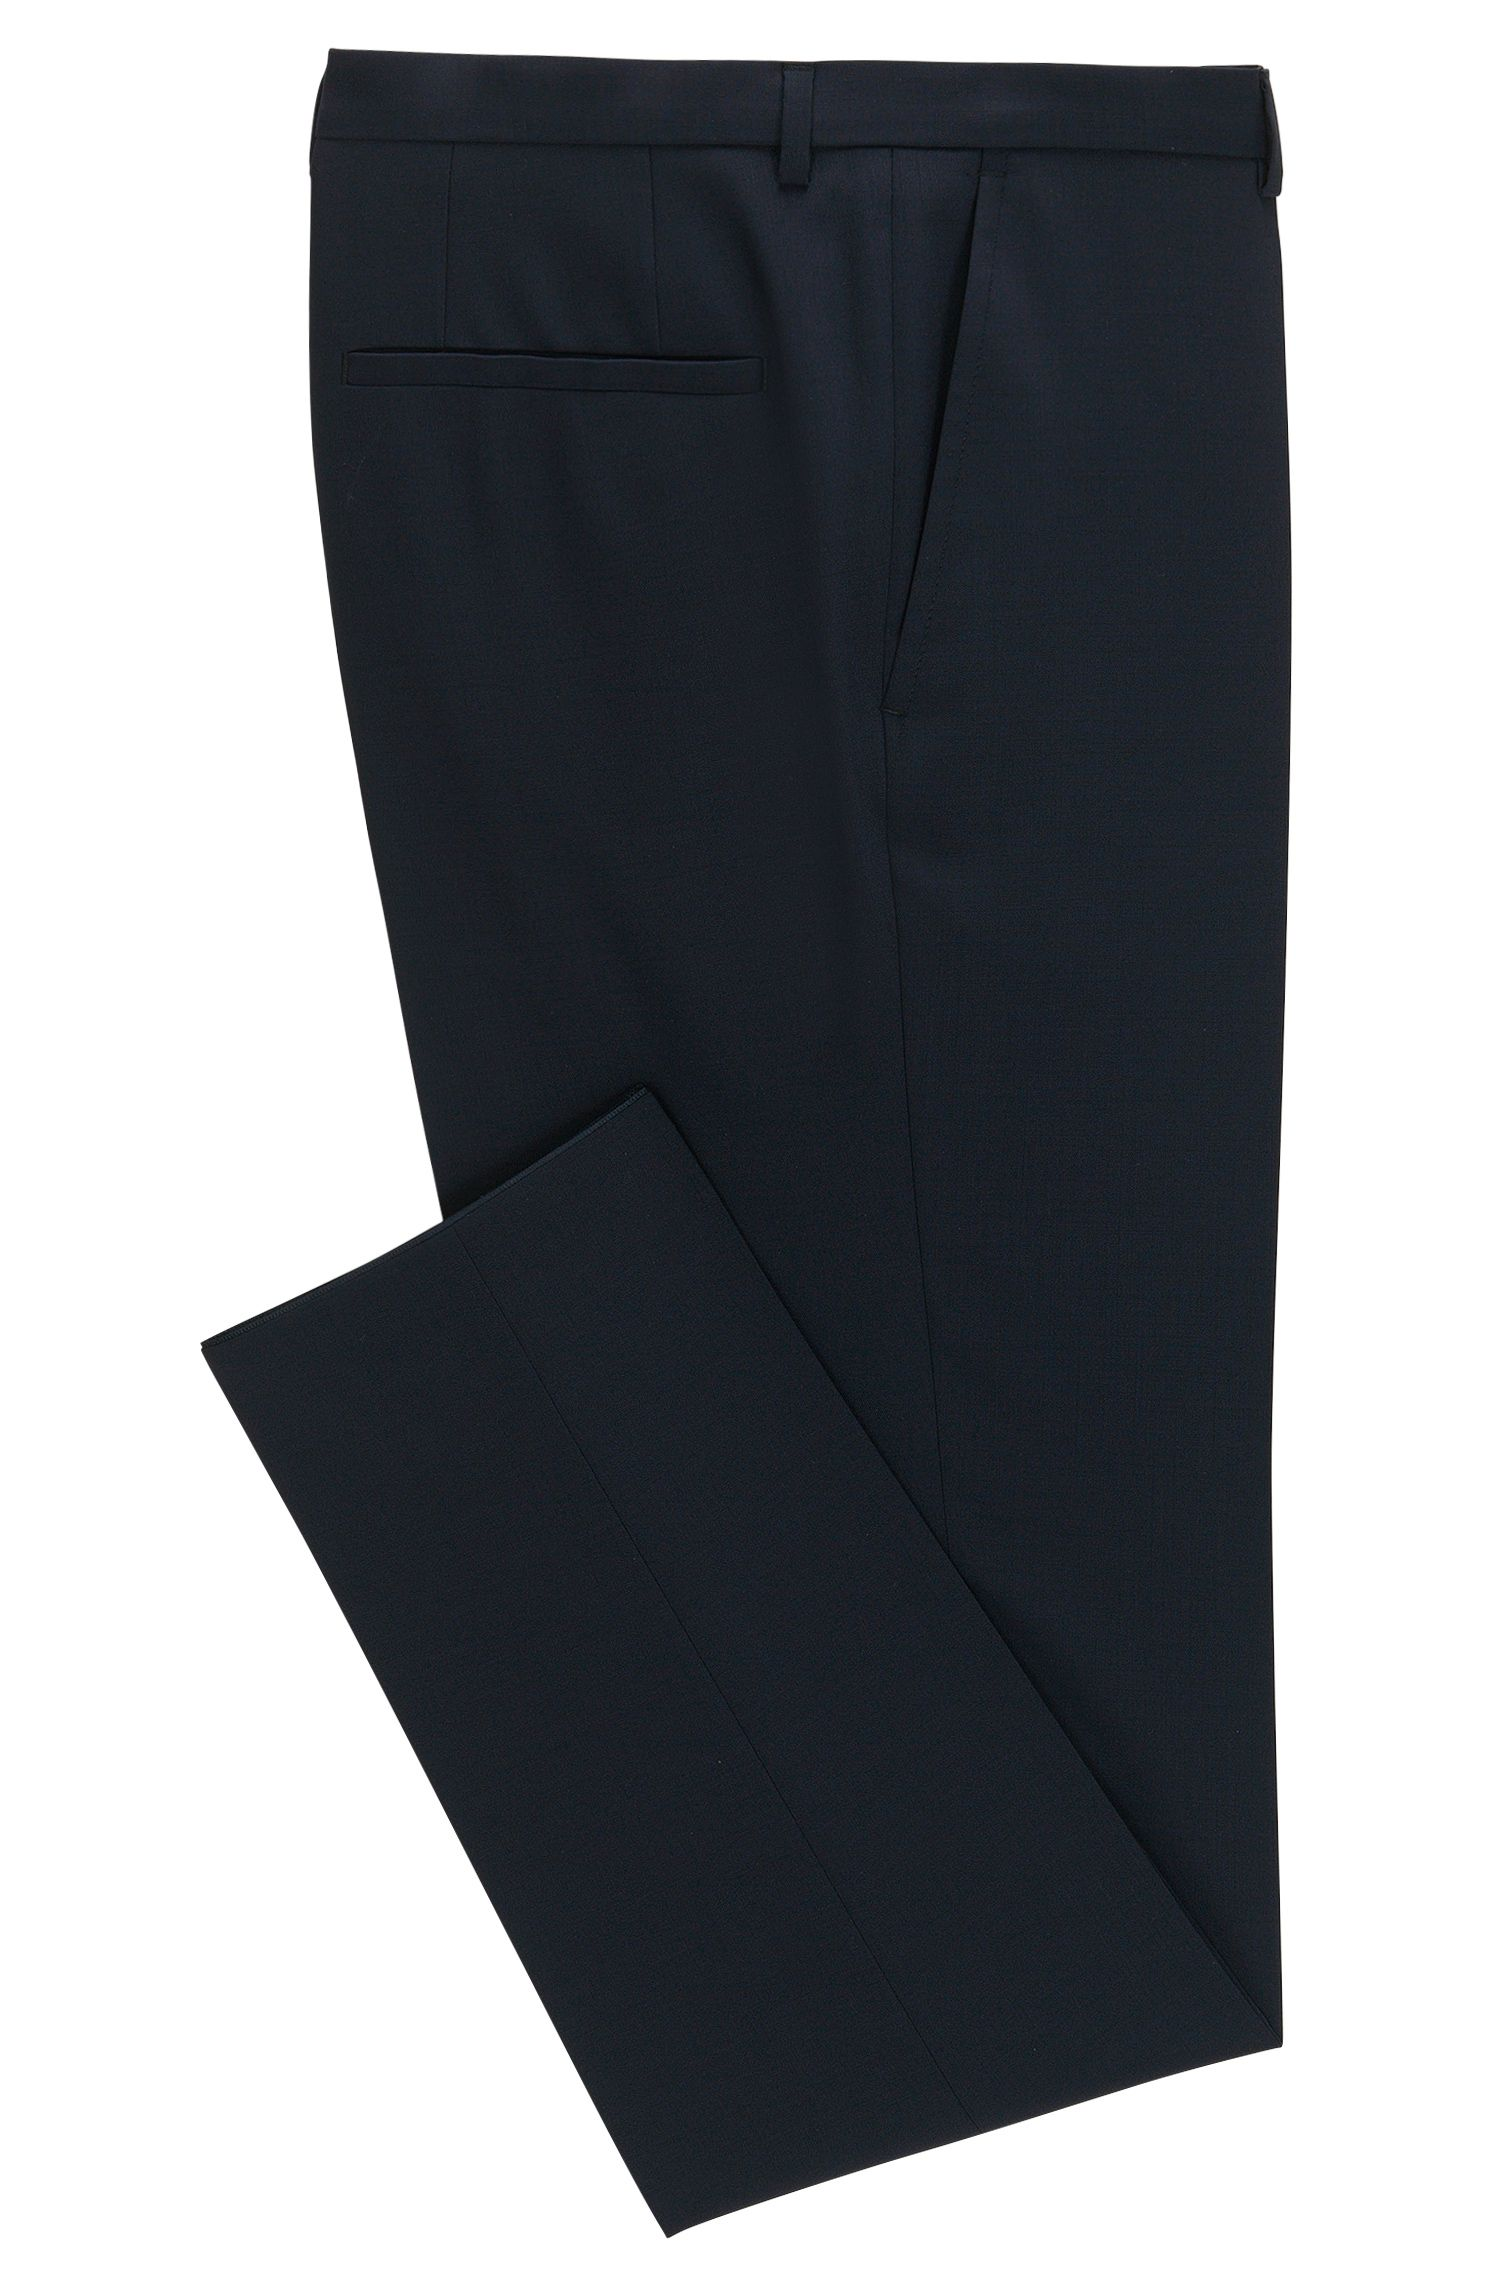 Pantaloni extra slim fit in lana vergine HUGO Uomo, Blu scuro